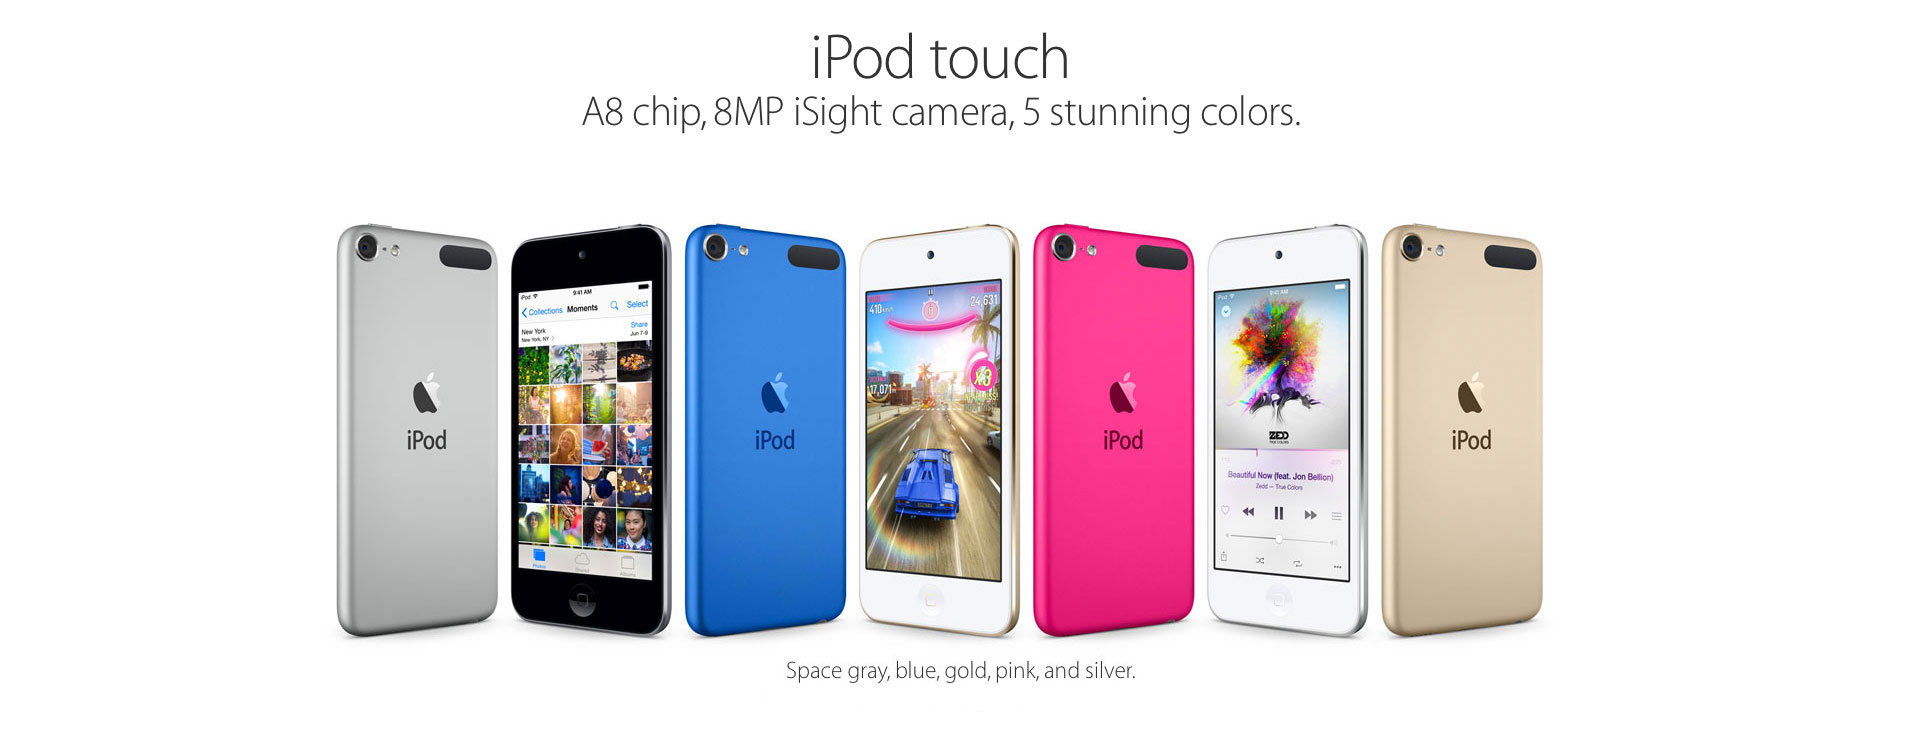 ipod-touch-6th-generation-pakistan